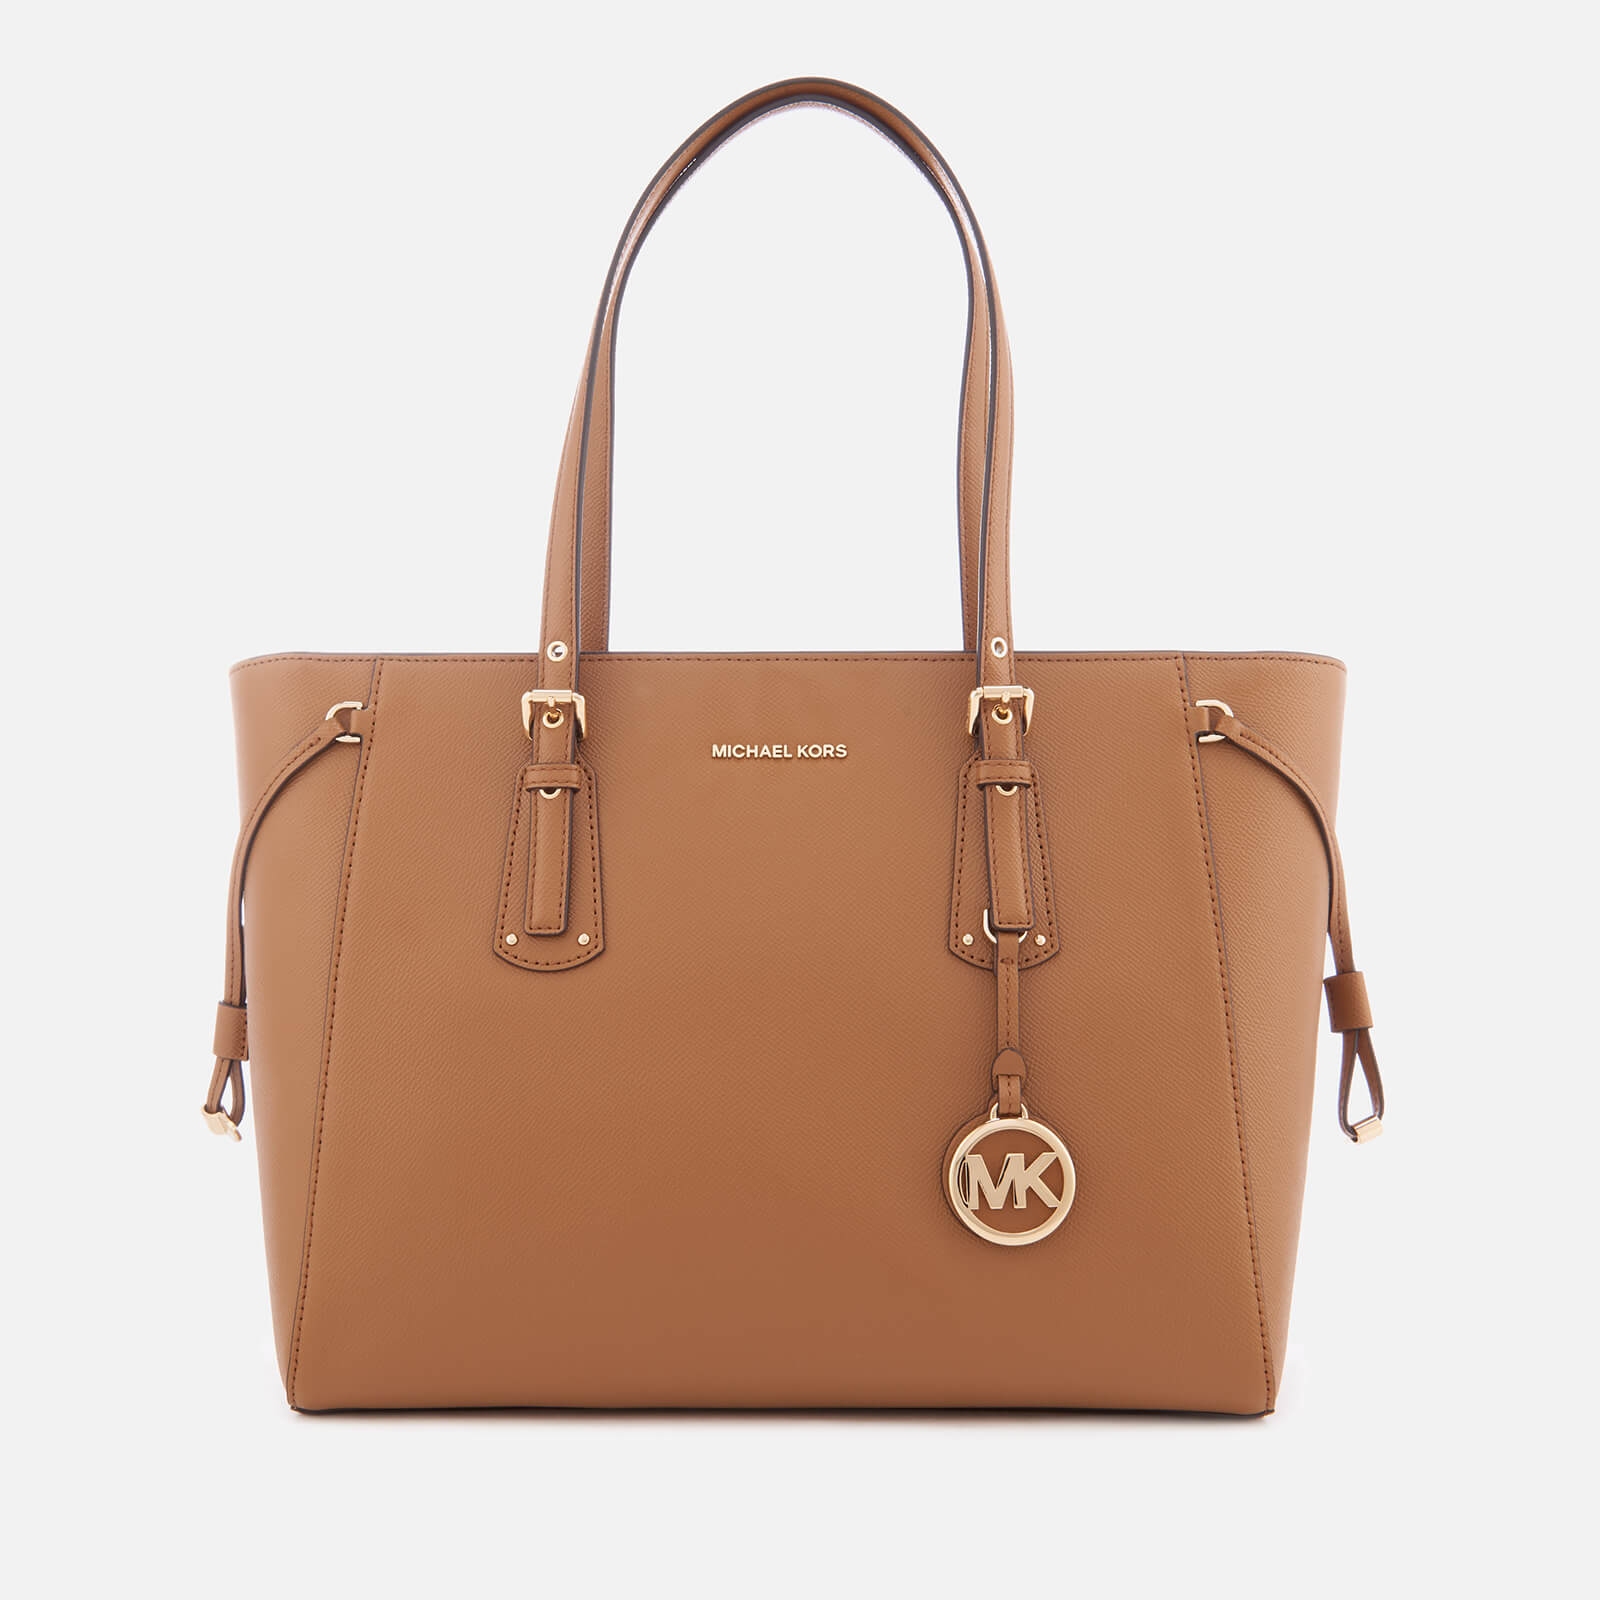 8756052effd1 MICHAEL MICHAEL KORS Women's Voyager Medium Tote Bag - Acorn